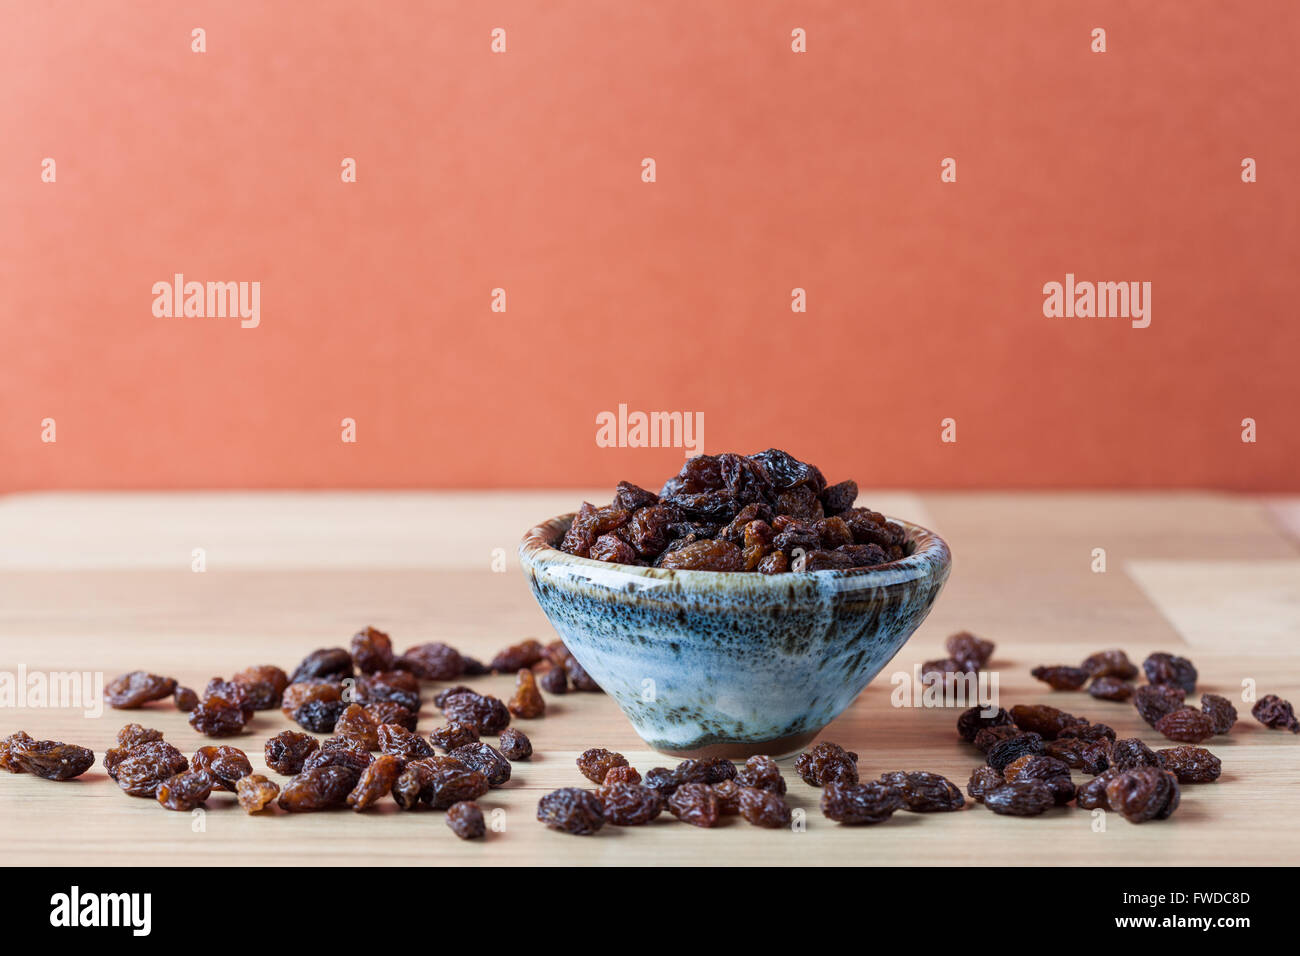 Organic raisins in handmade ceramic bowl on wooden table. Horizontal image with copy space. Shallow depth of field. - Stock Image